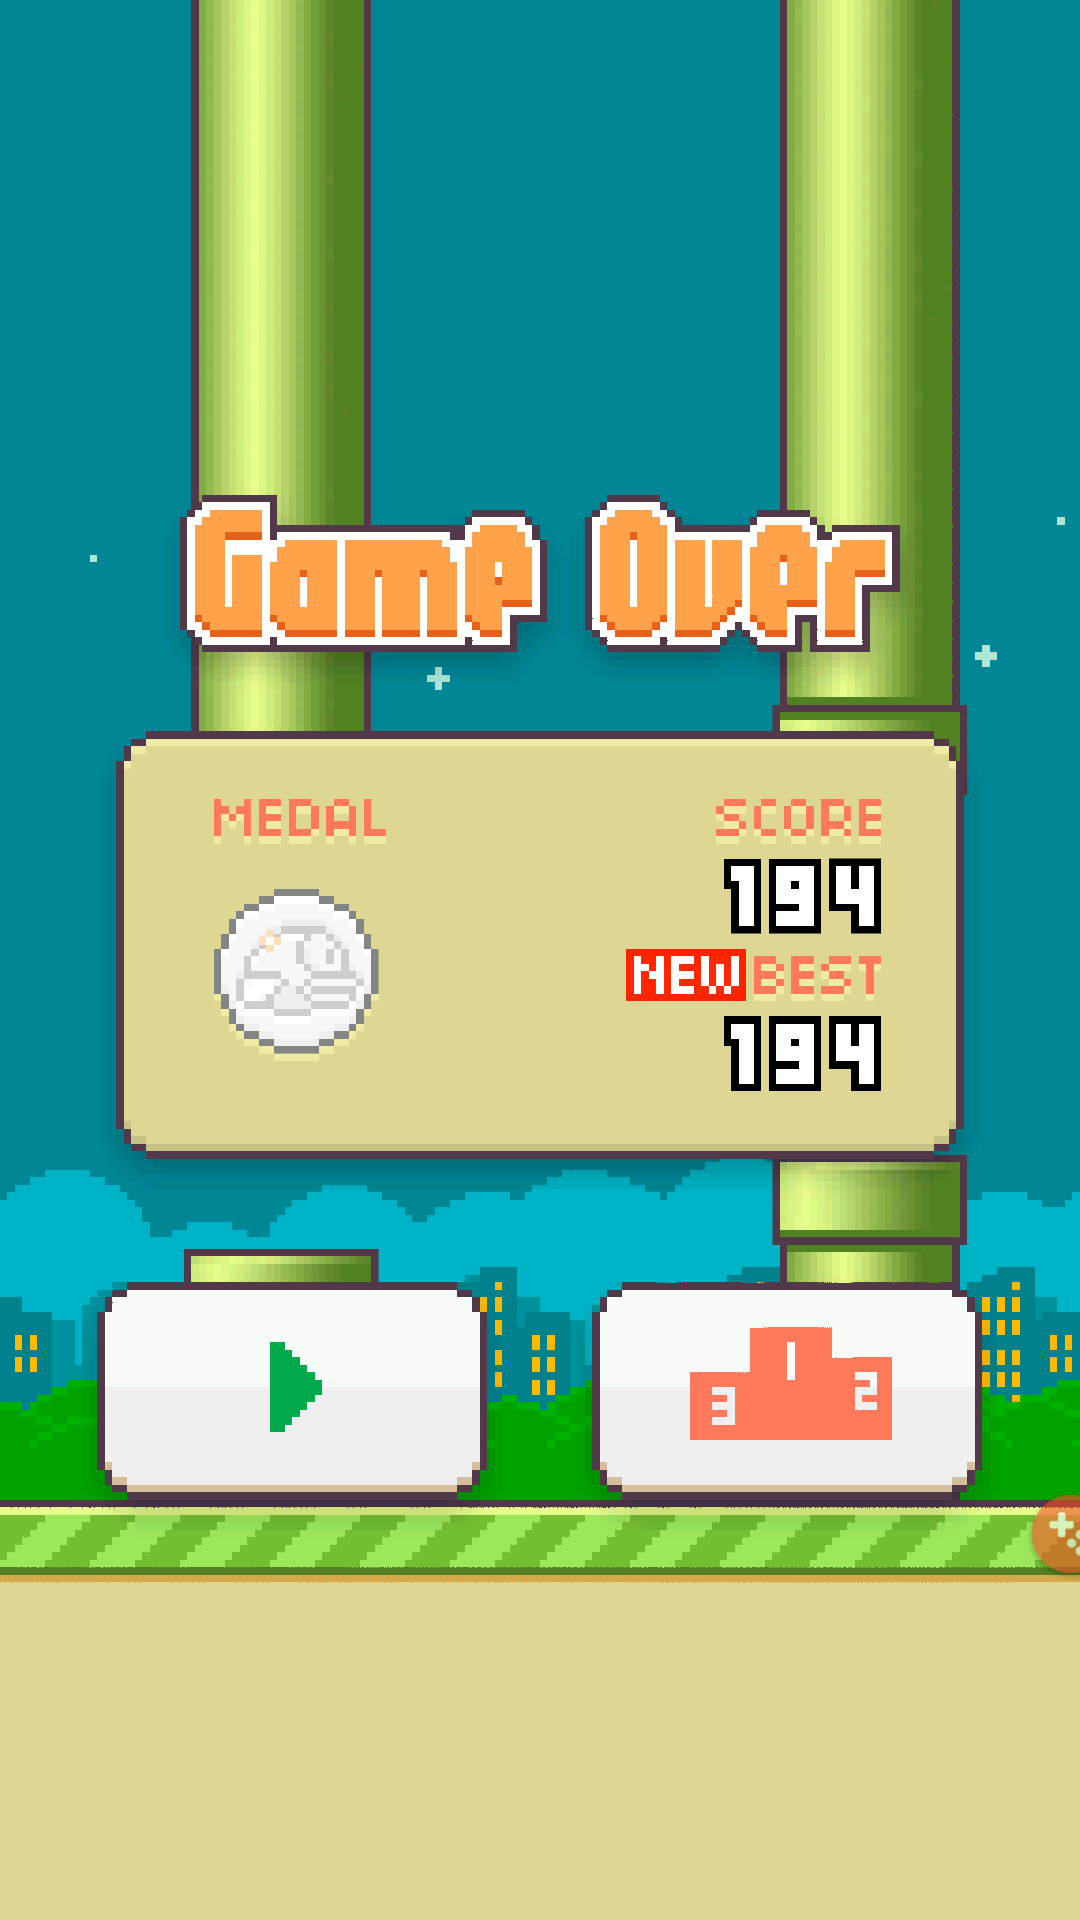 Flappy Bird 194 points